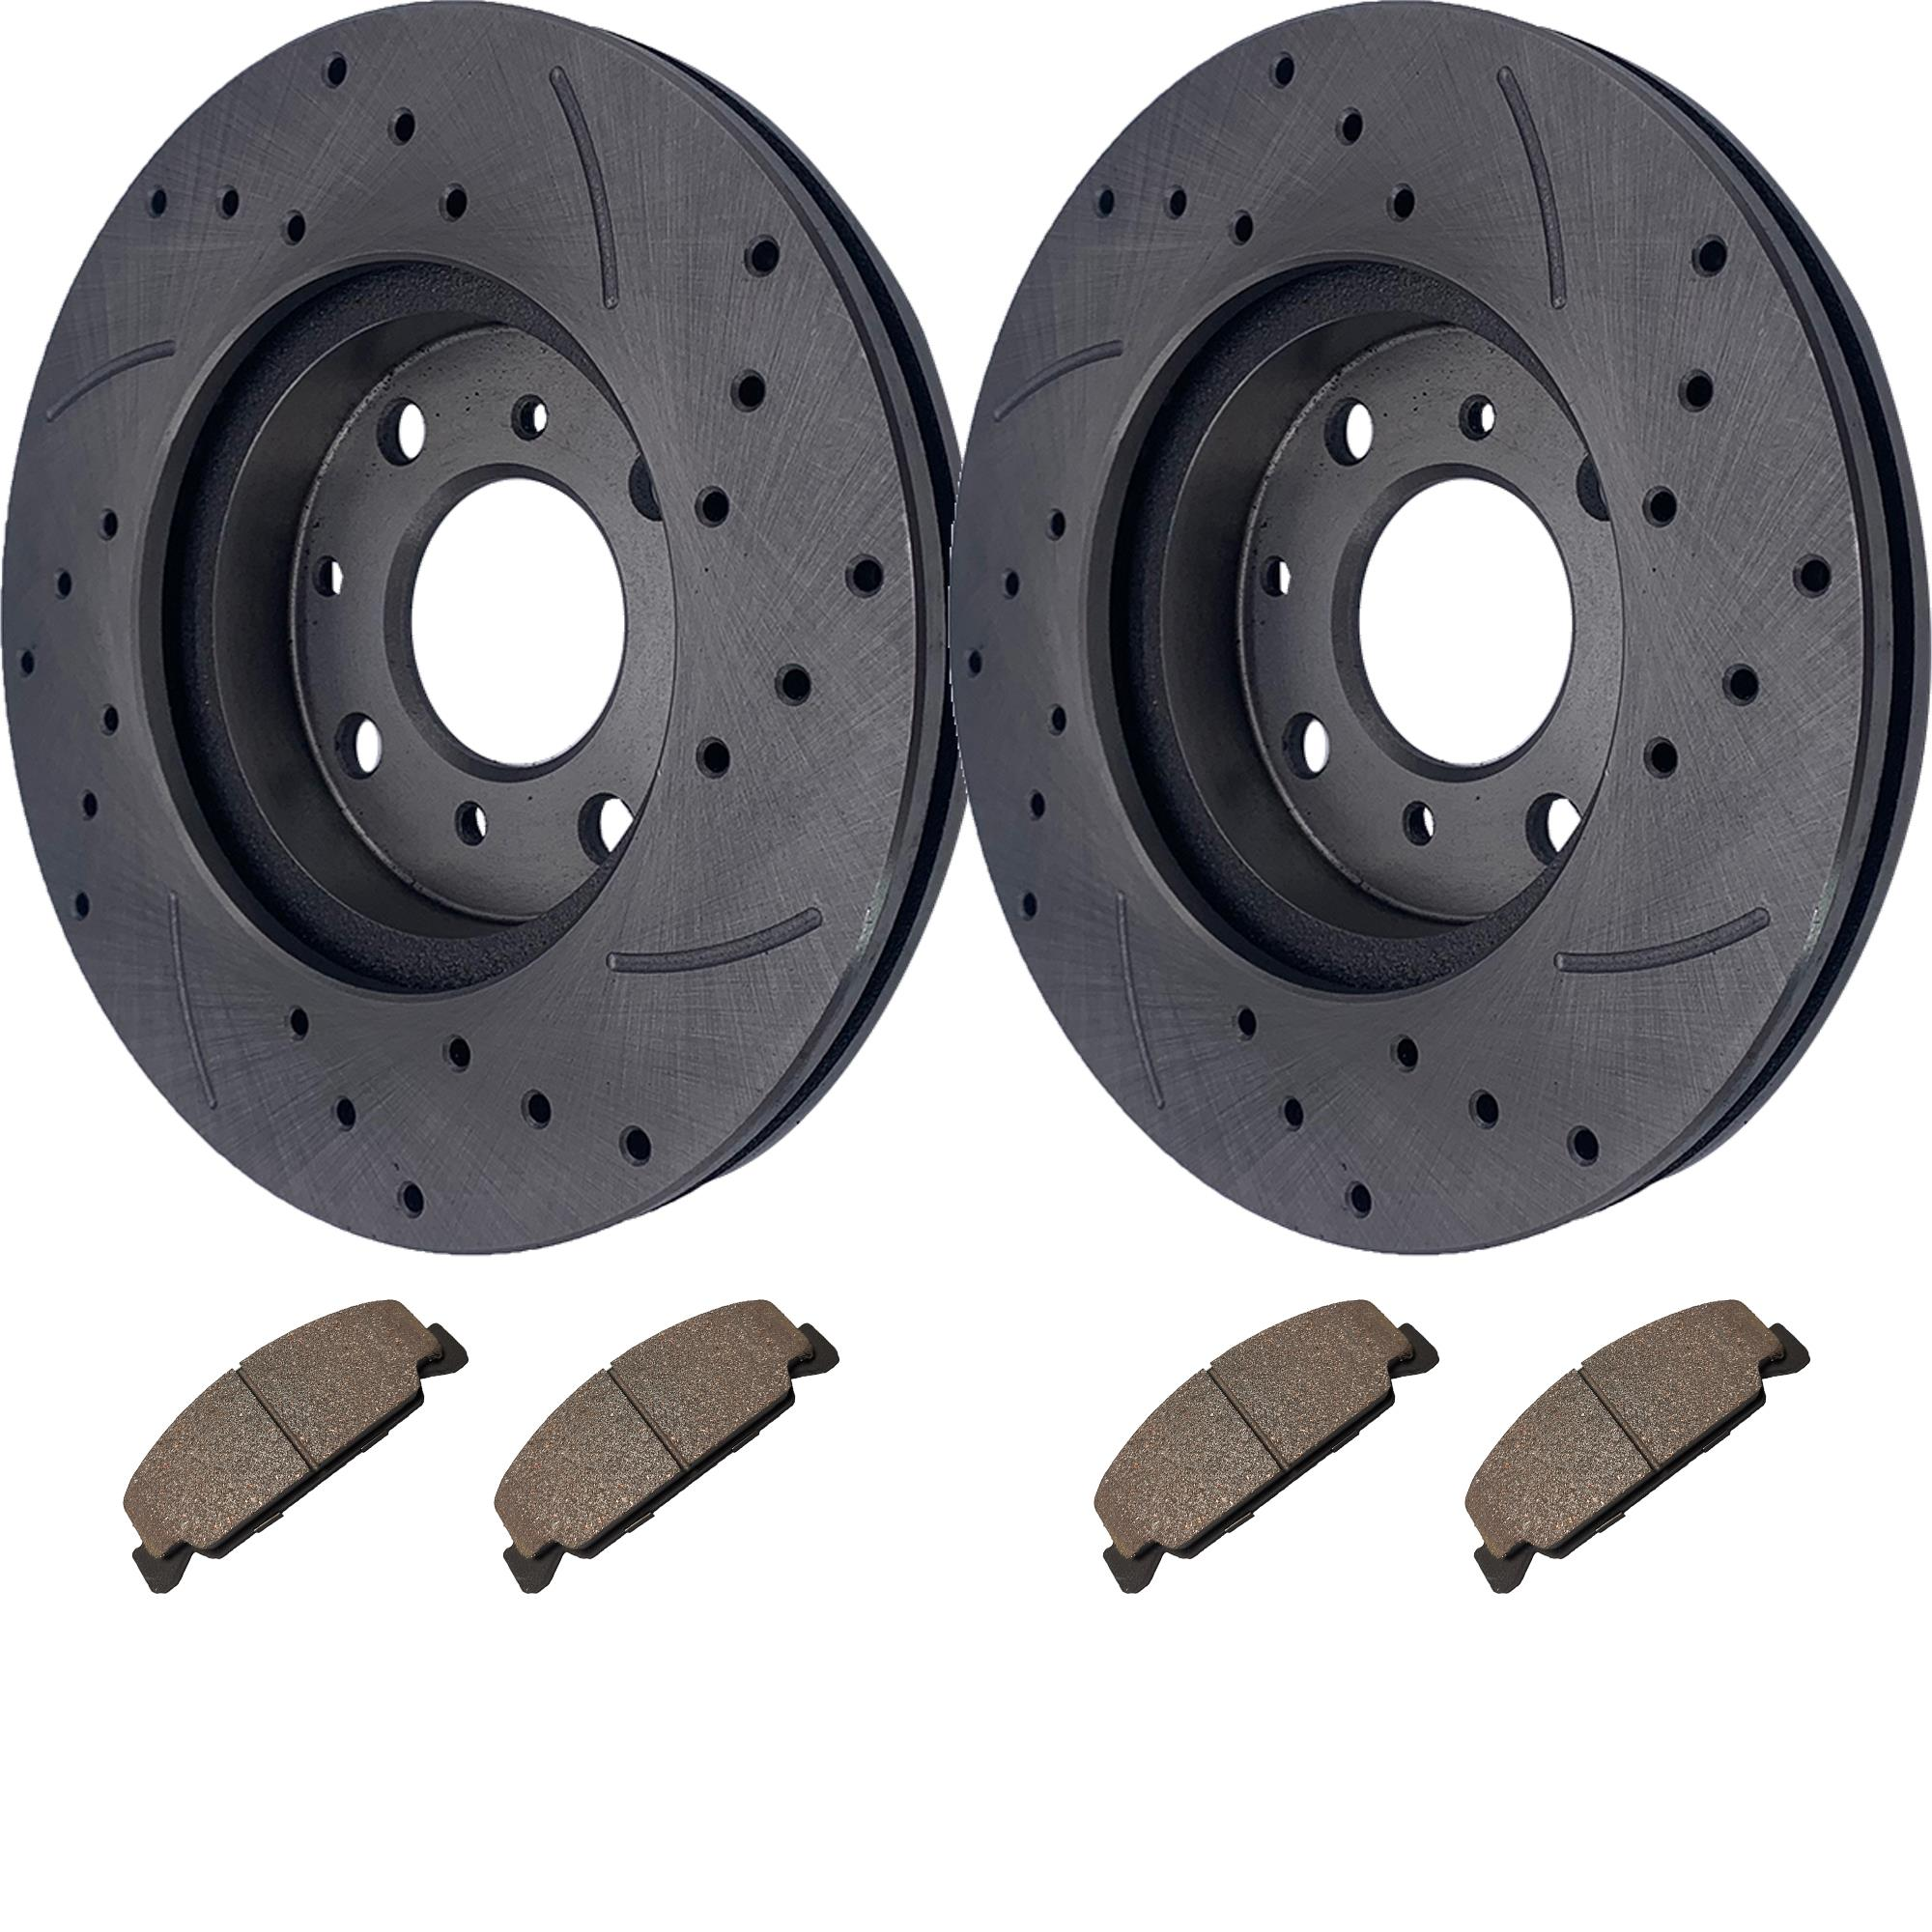 Front Drilled Slotted Brake Rotor Ceramic Pad for Honda Civic CRX Del Sol DX GX